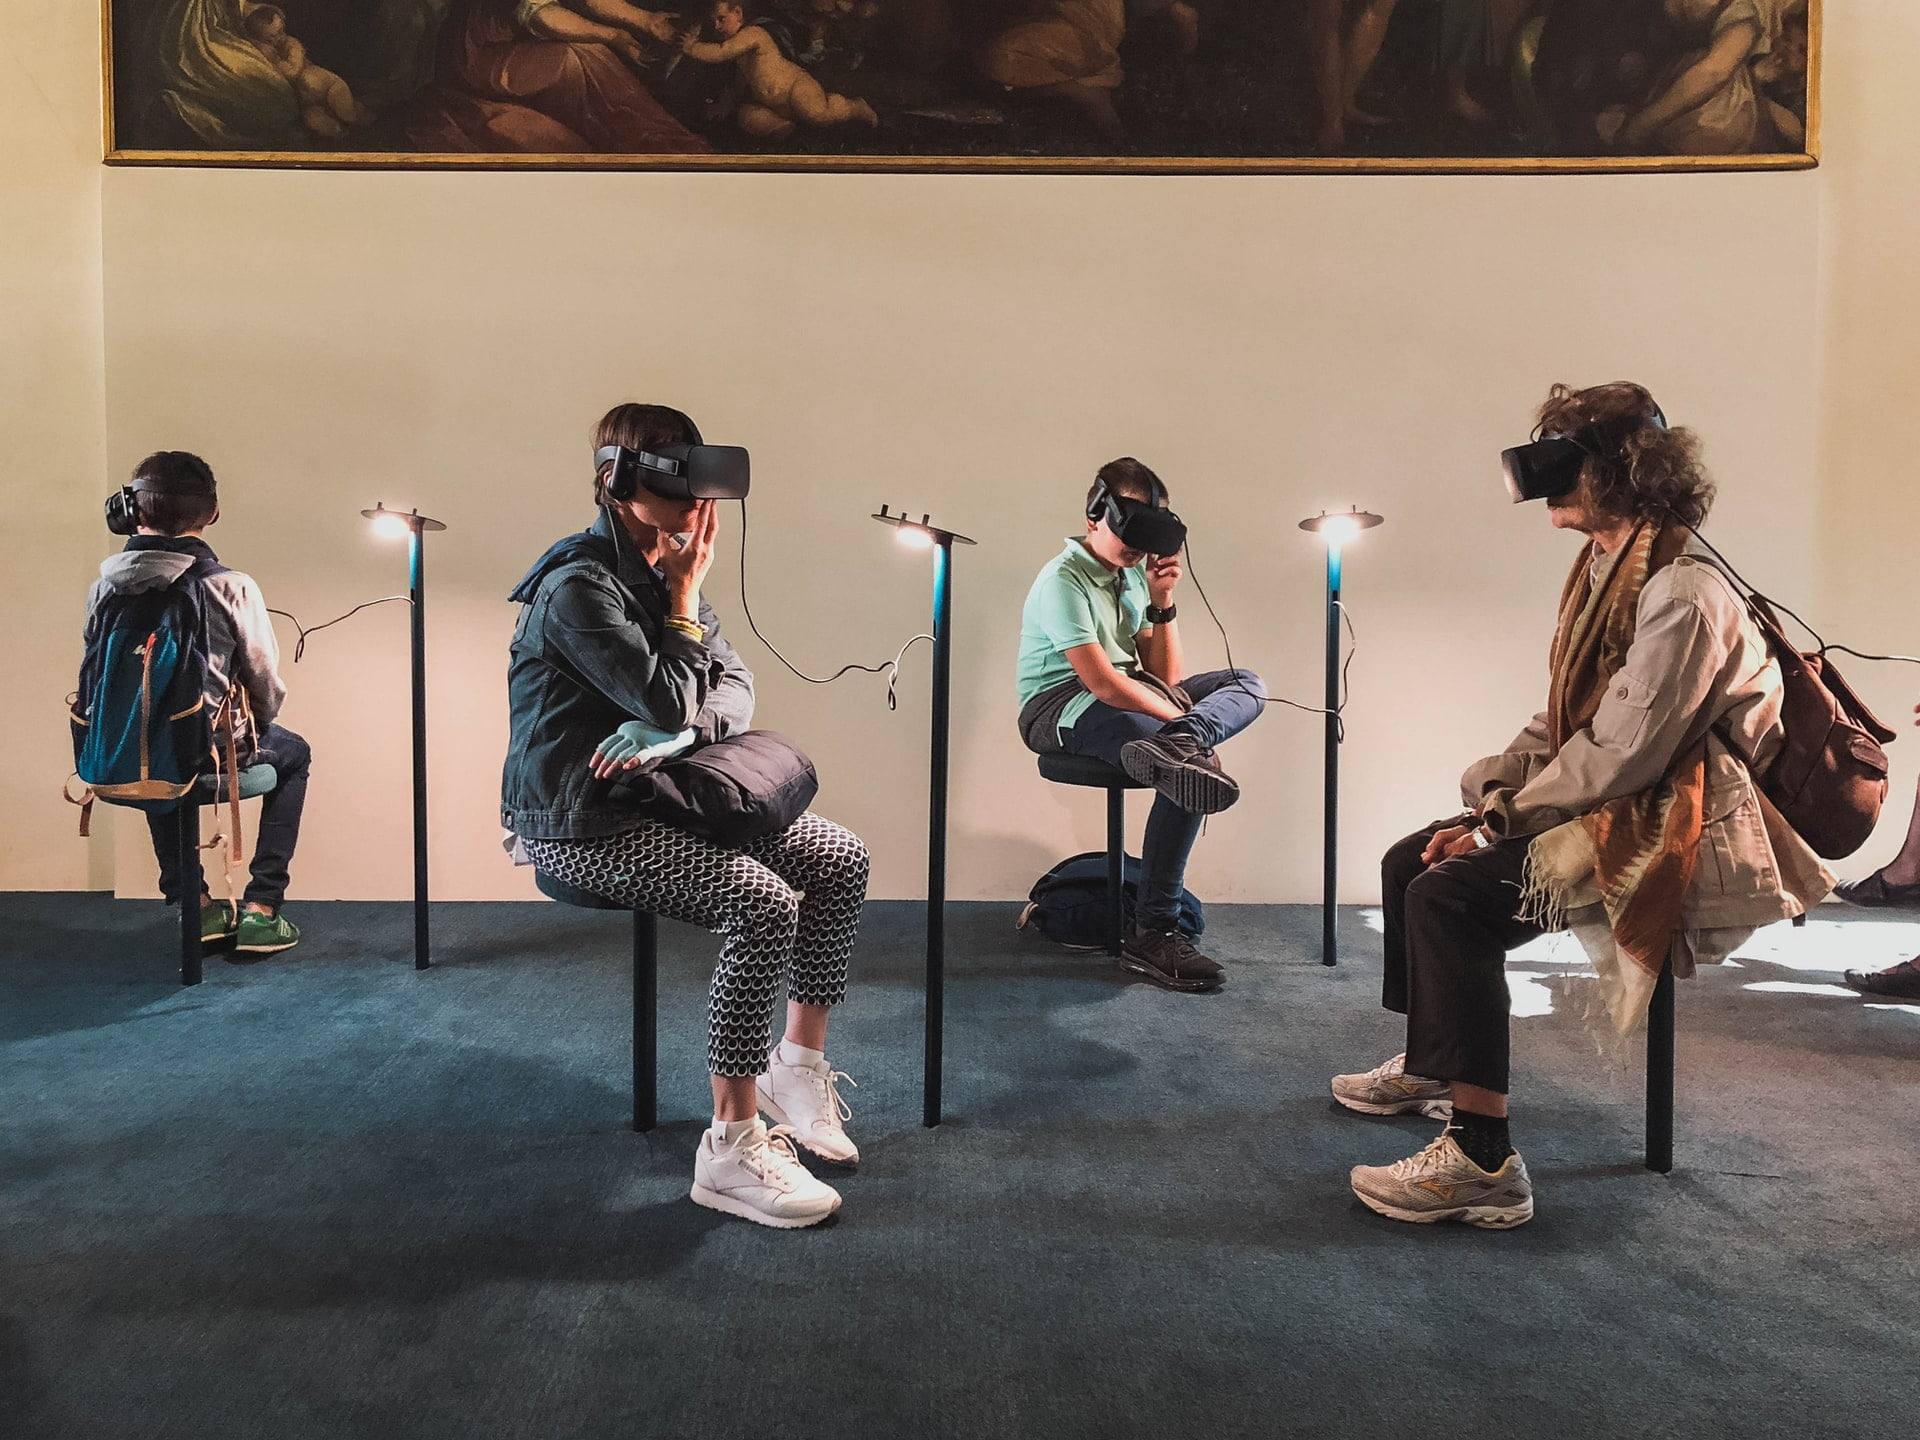 VR party